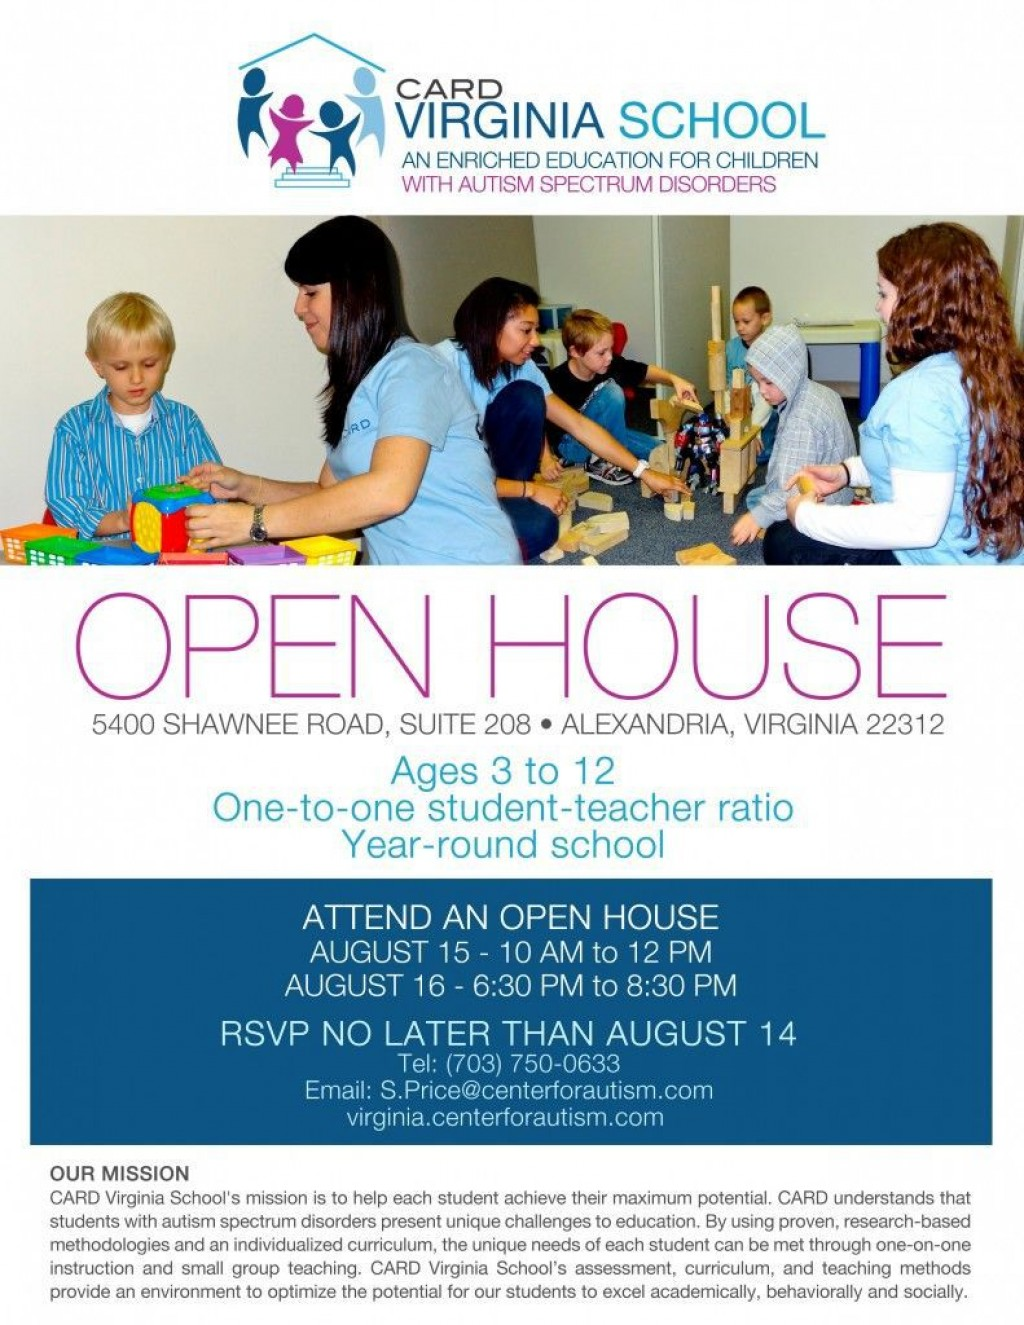 003 Surprising School Open House Flyer Template Image  Free MicrosoftLarge